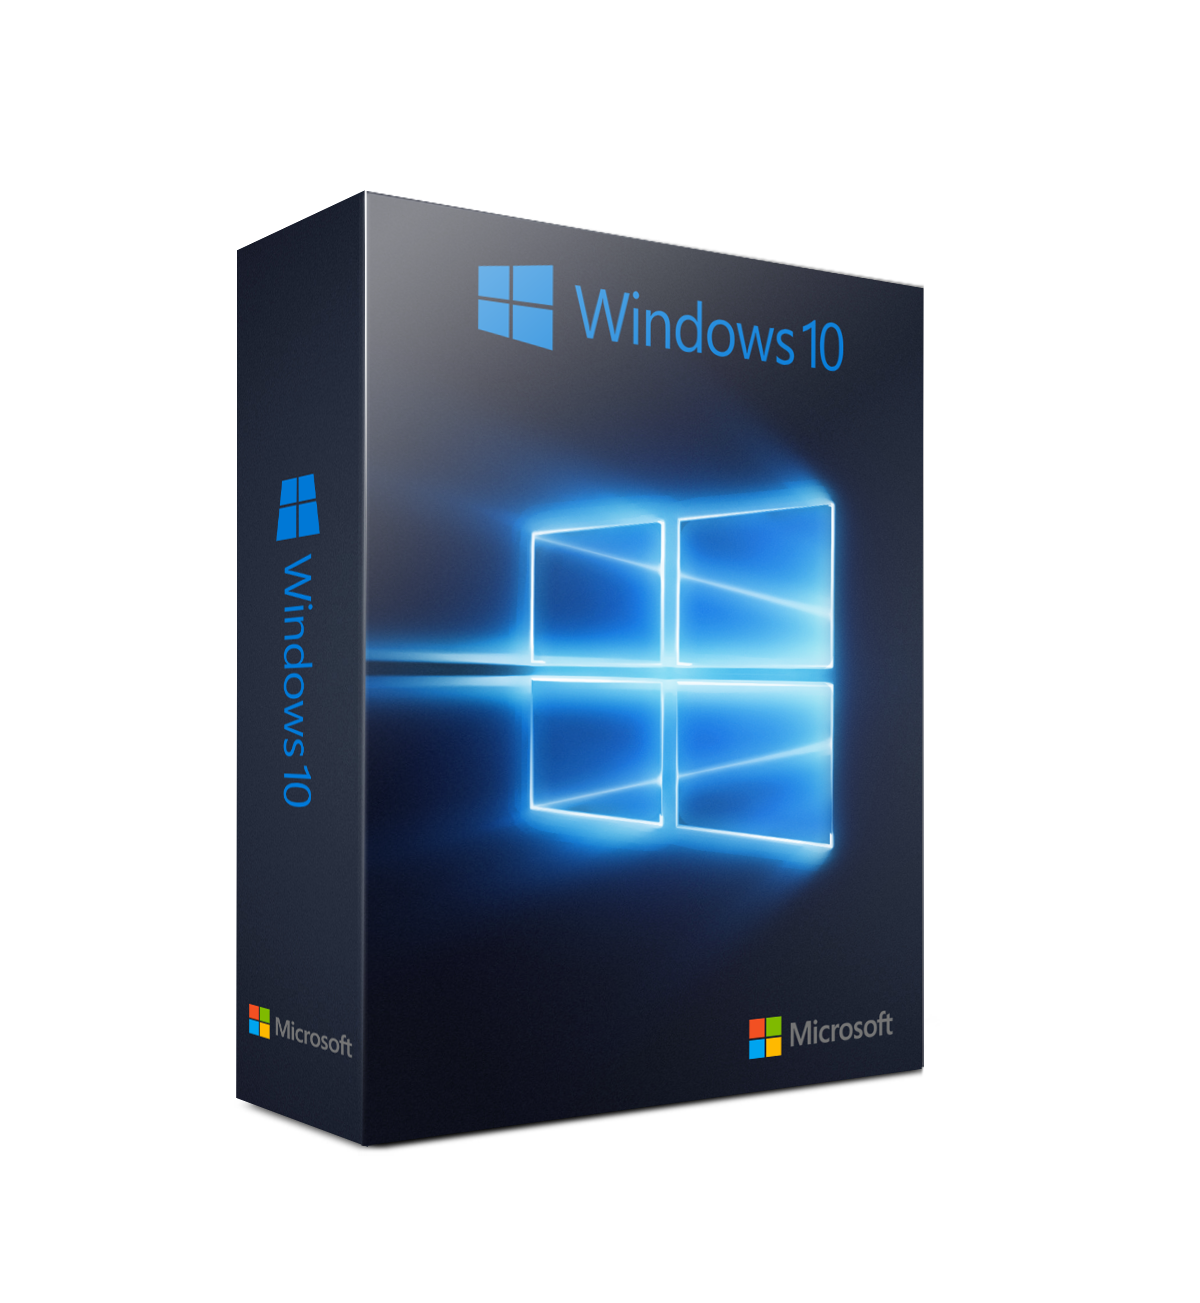 Download Windows Windows 10 AIO Build 10586 November 2015 | MagOne 2016